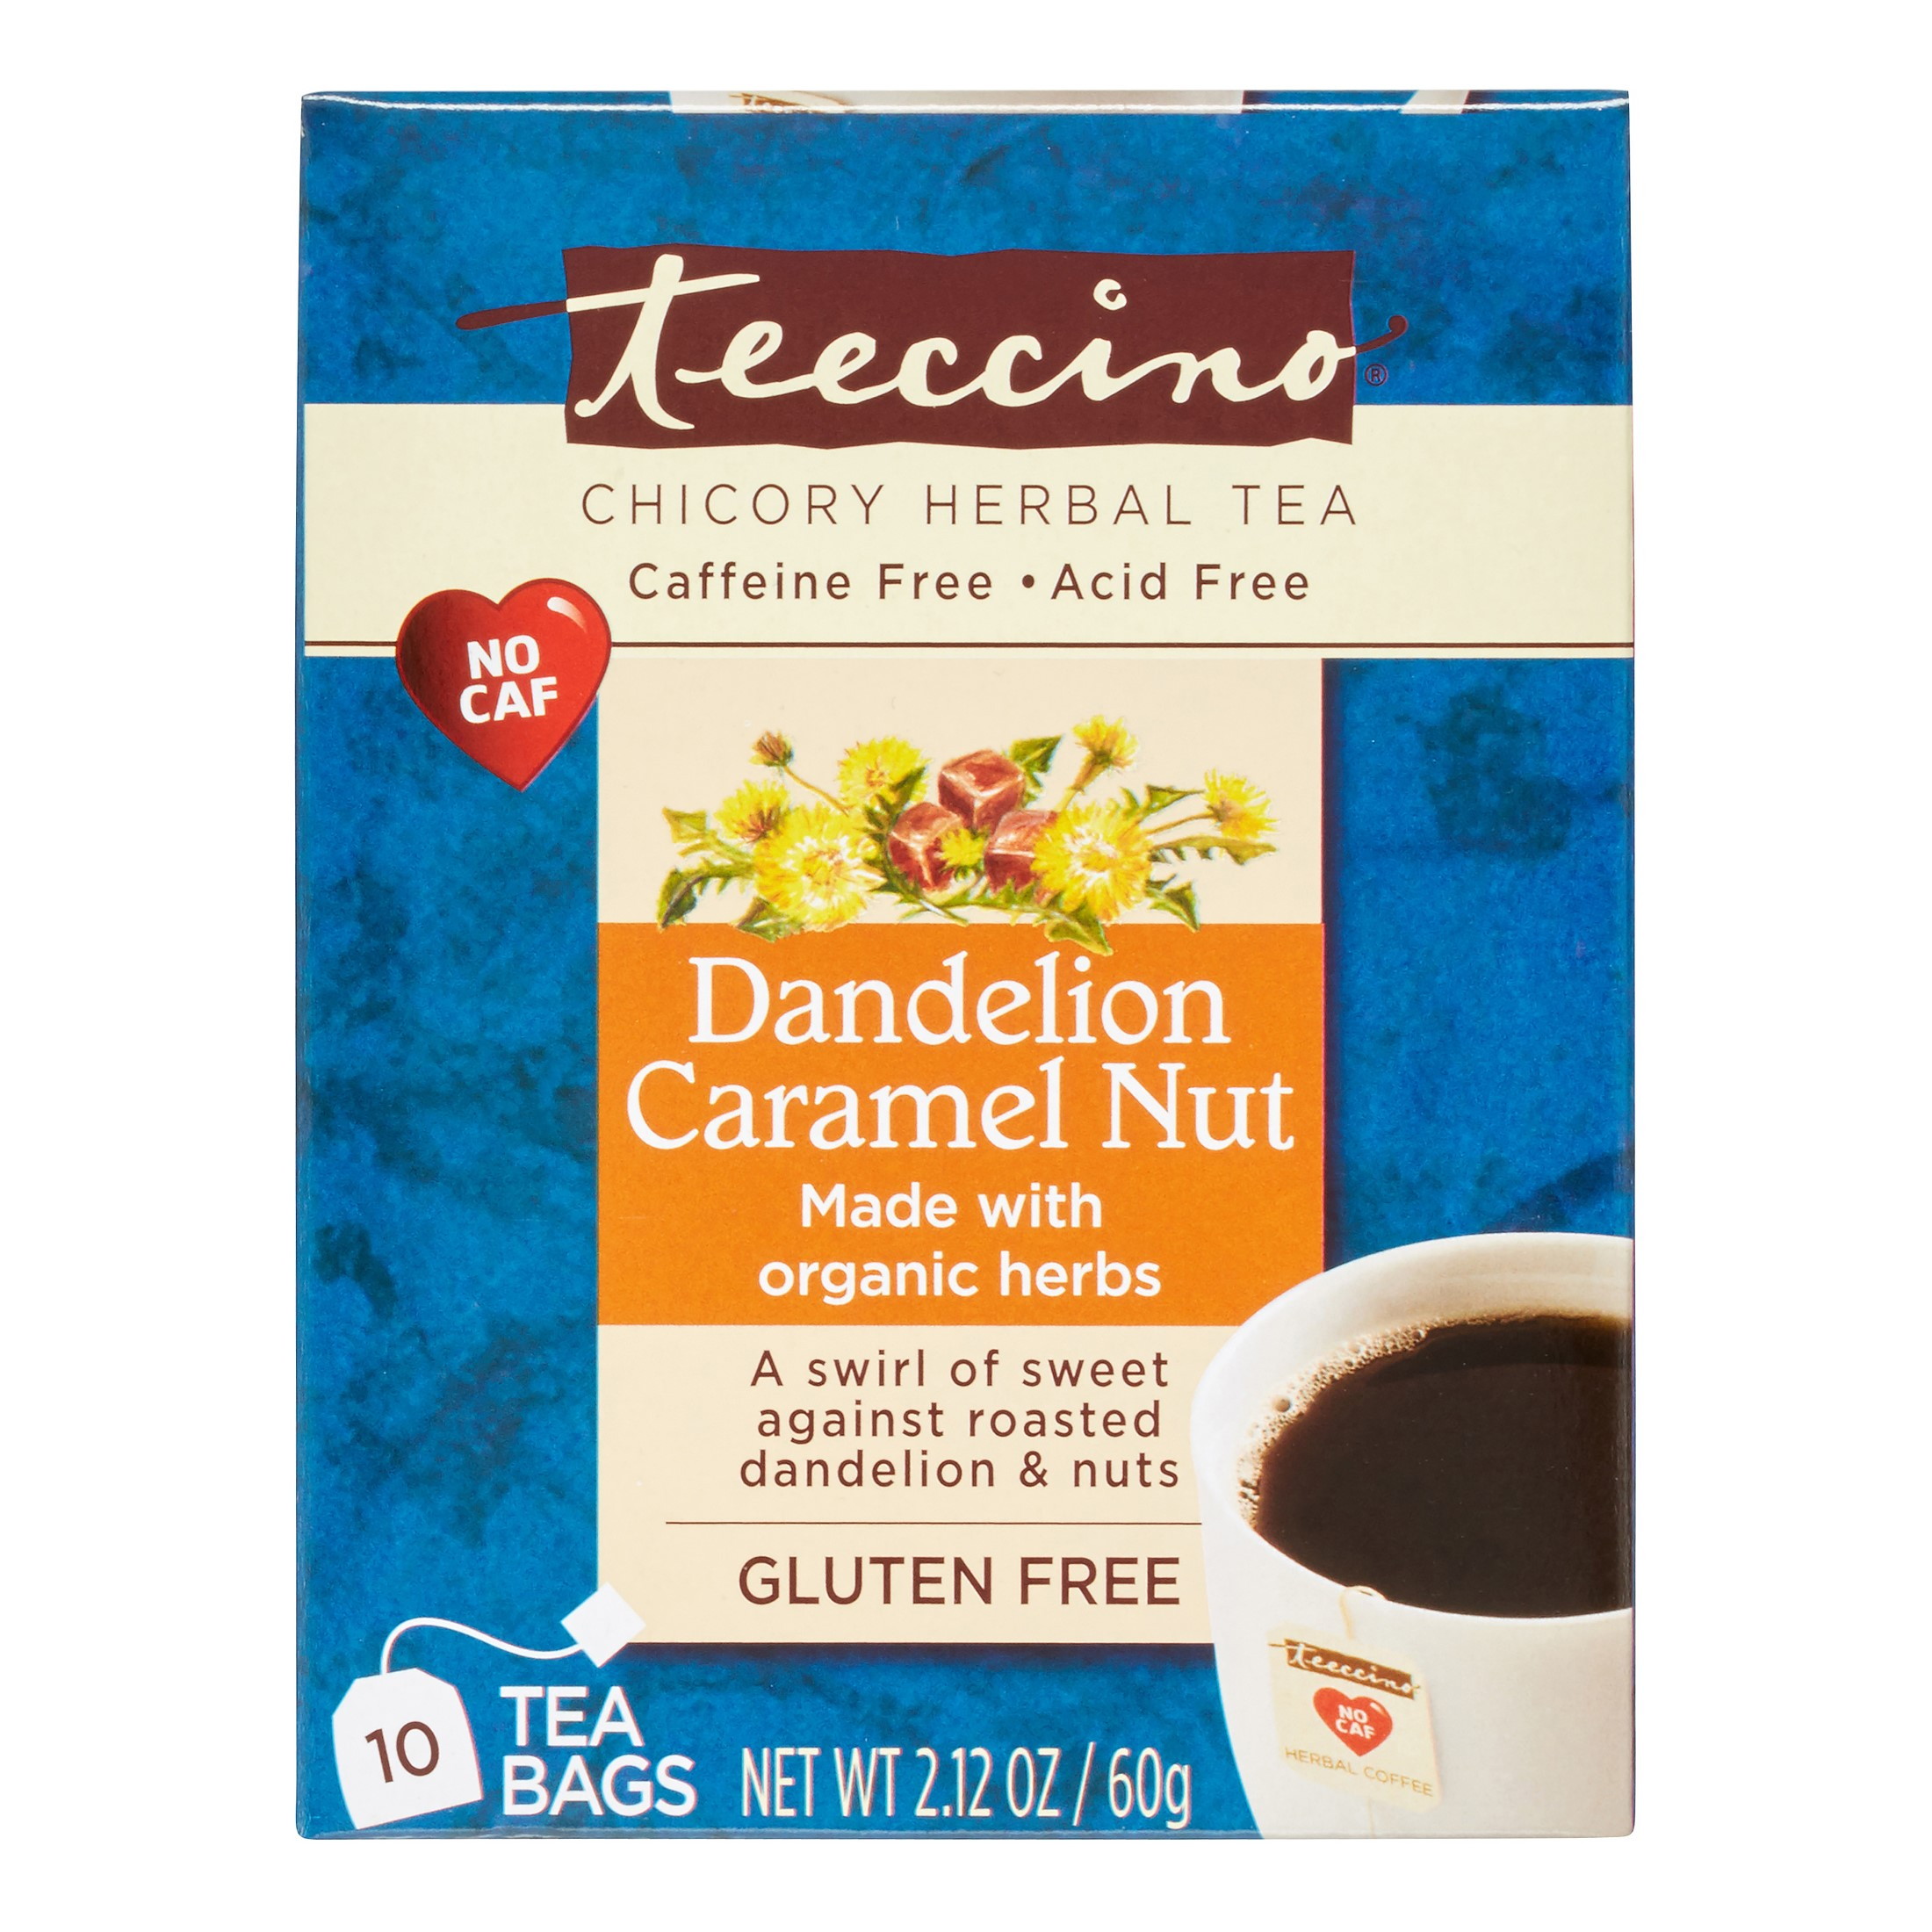 Dandelion Caramel Nut Chicory Herbal Tea 10ct